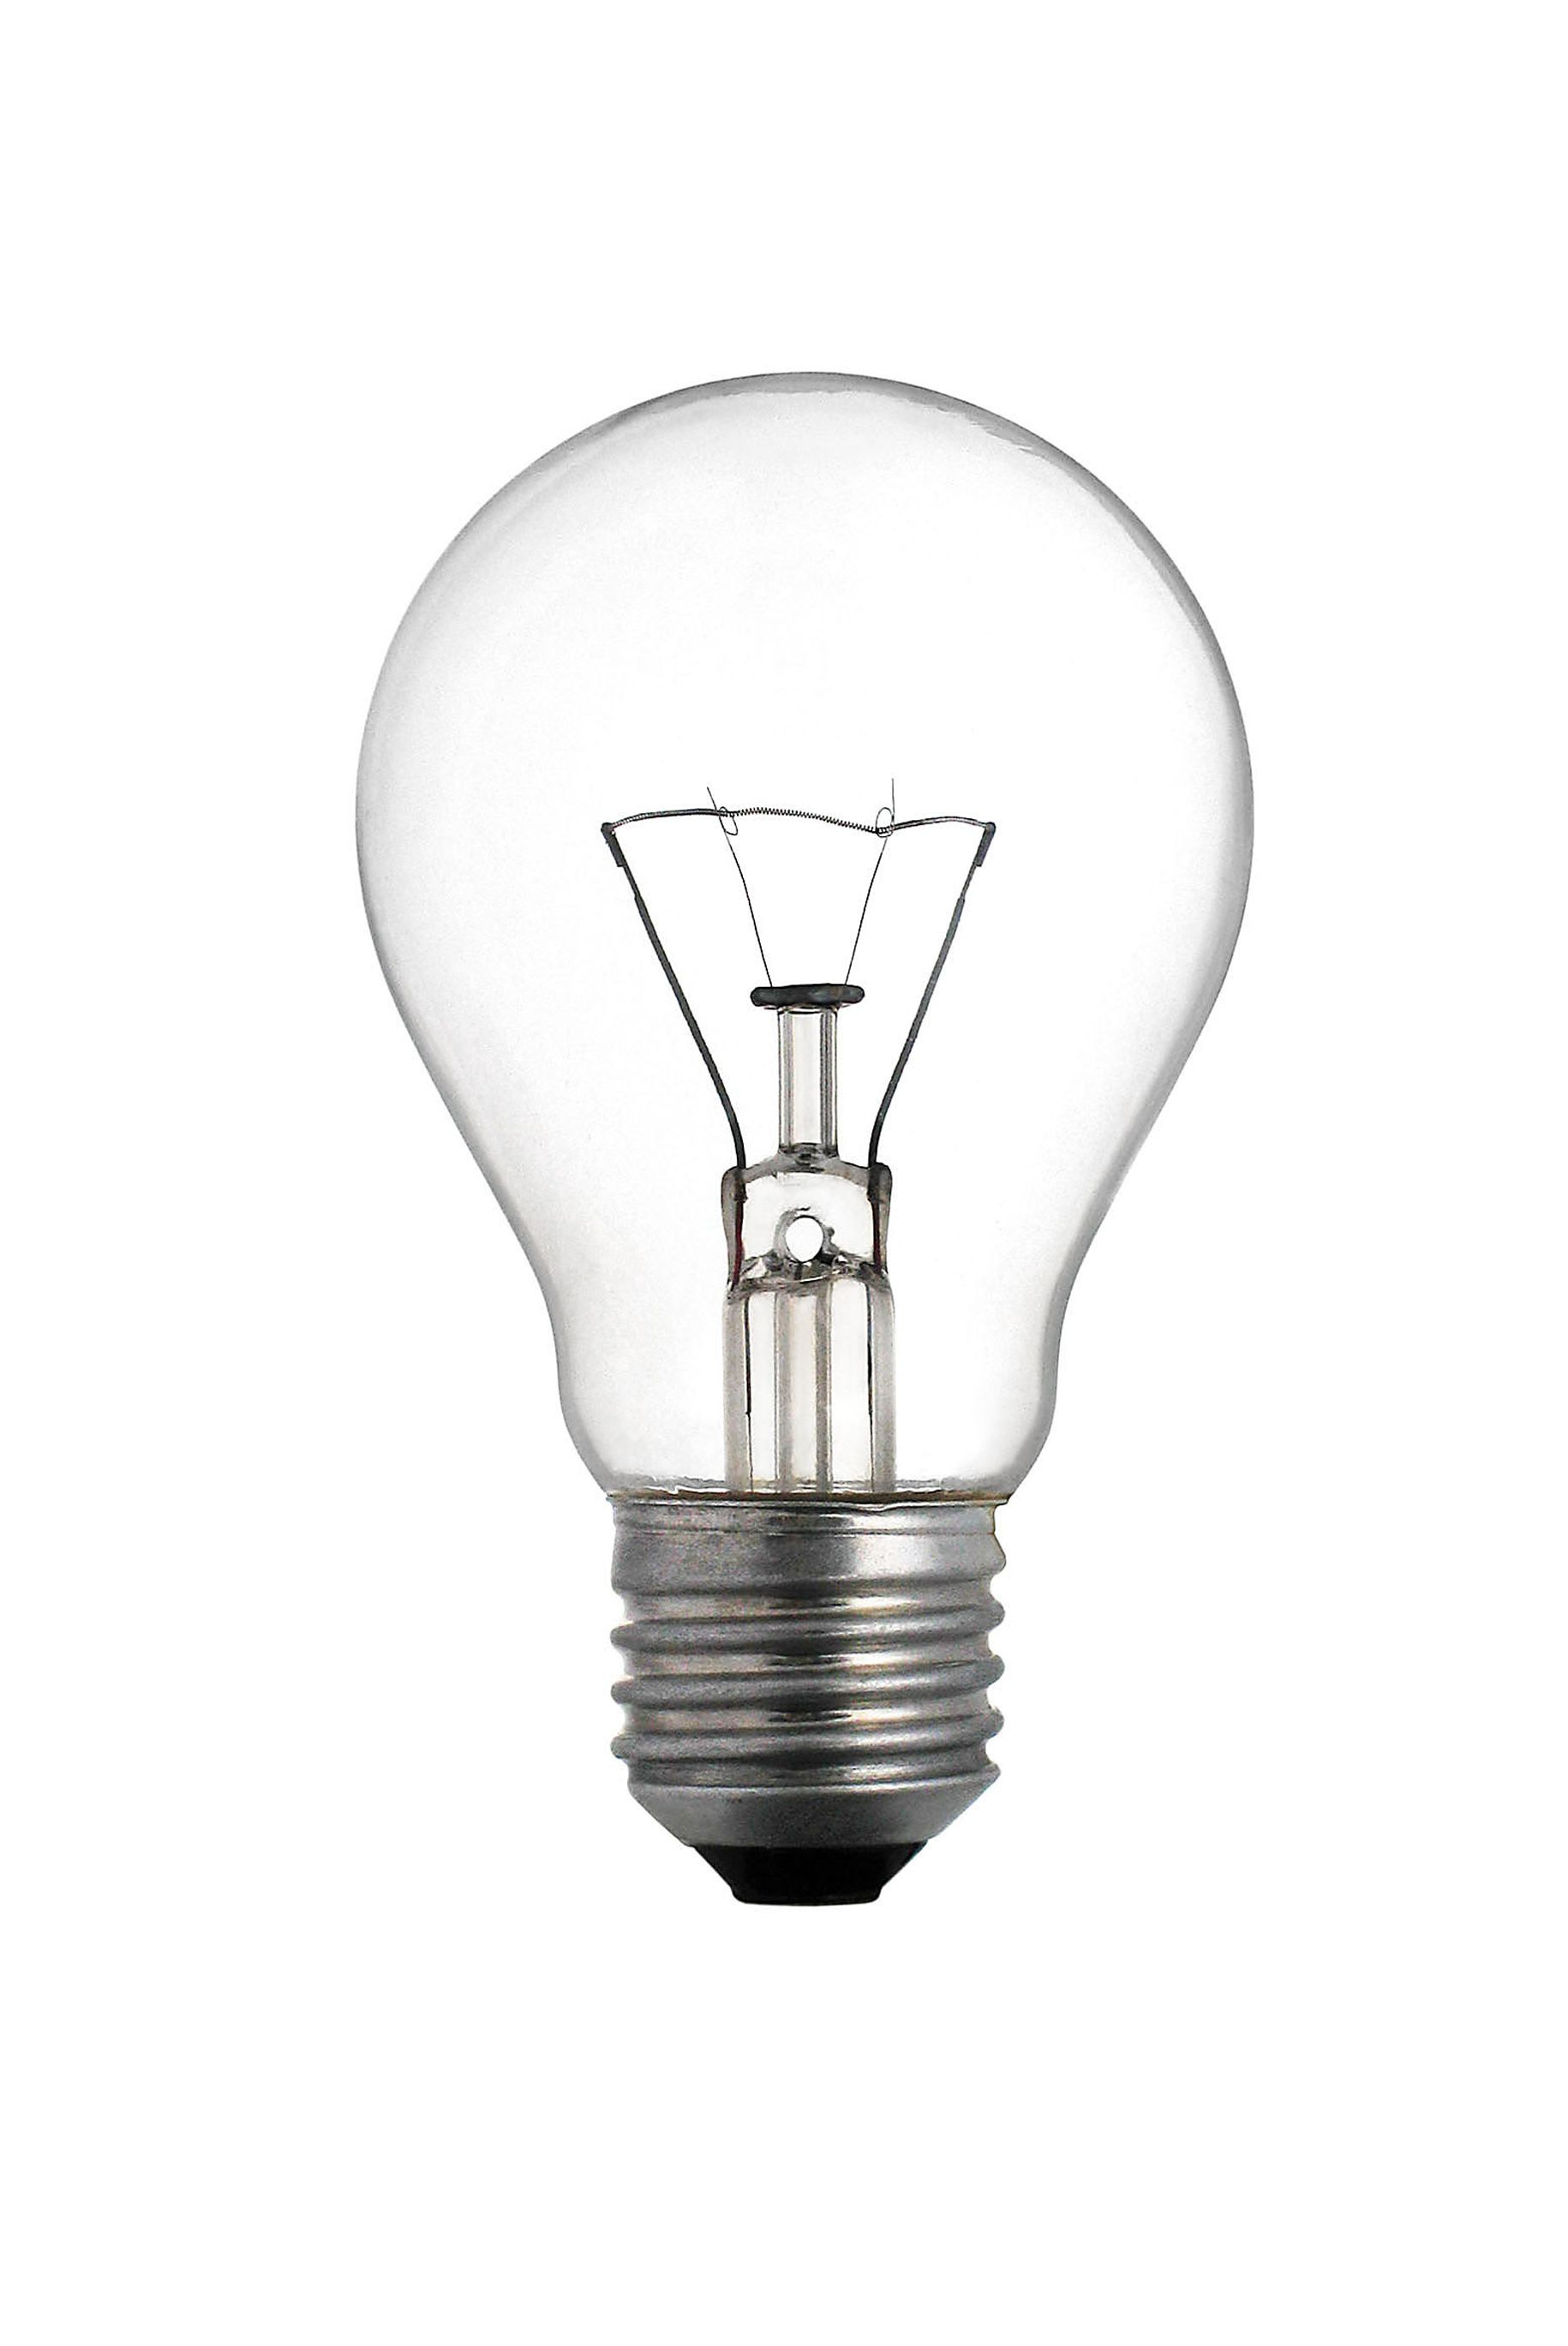 What Is Electric Light Bulb